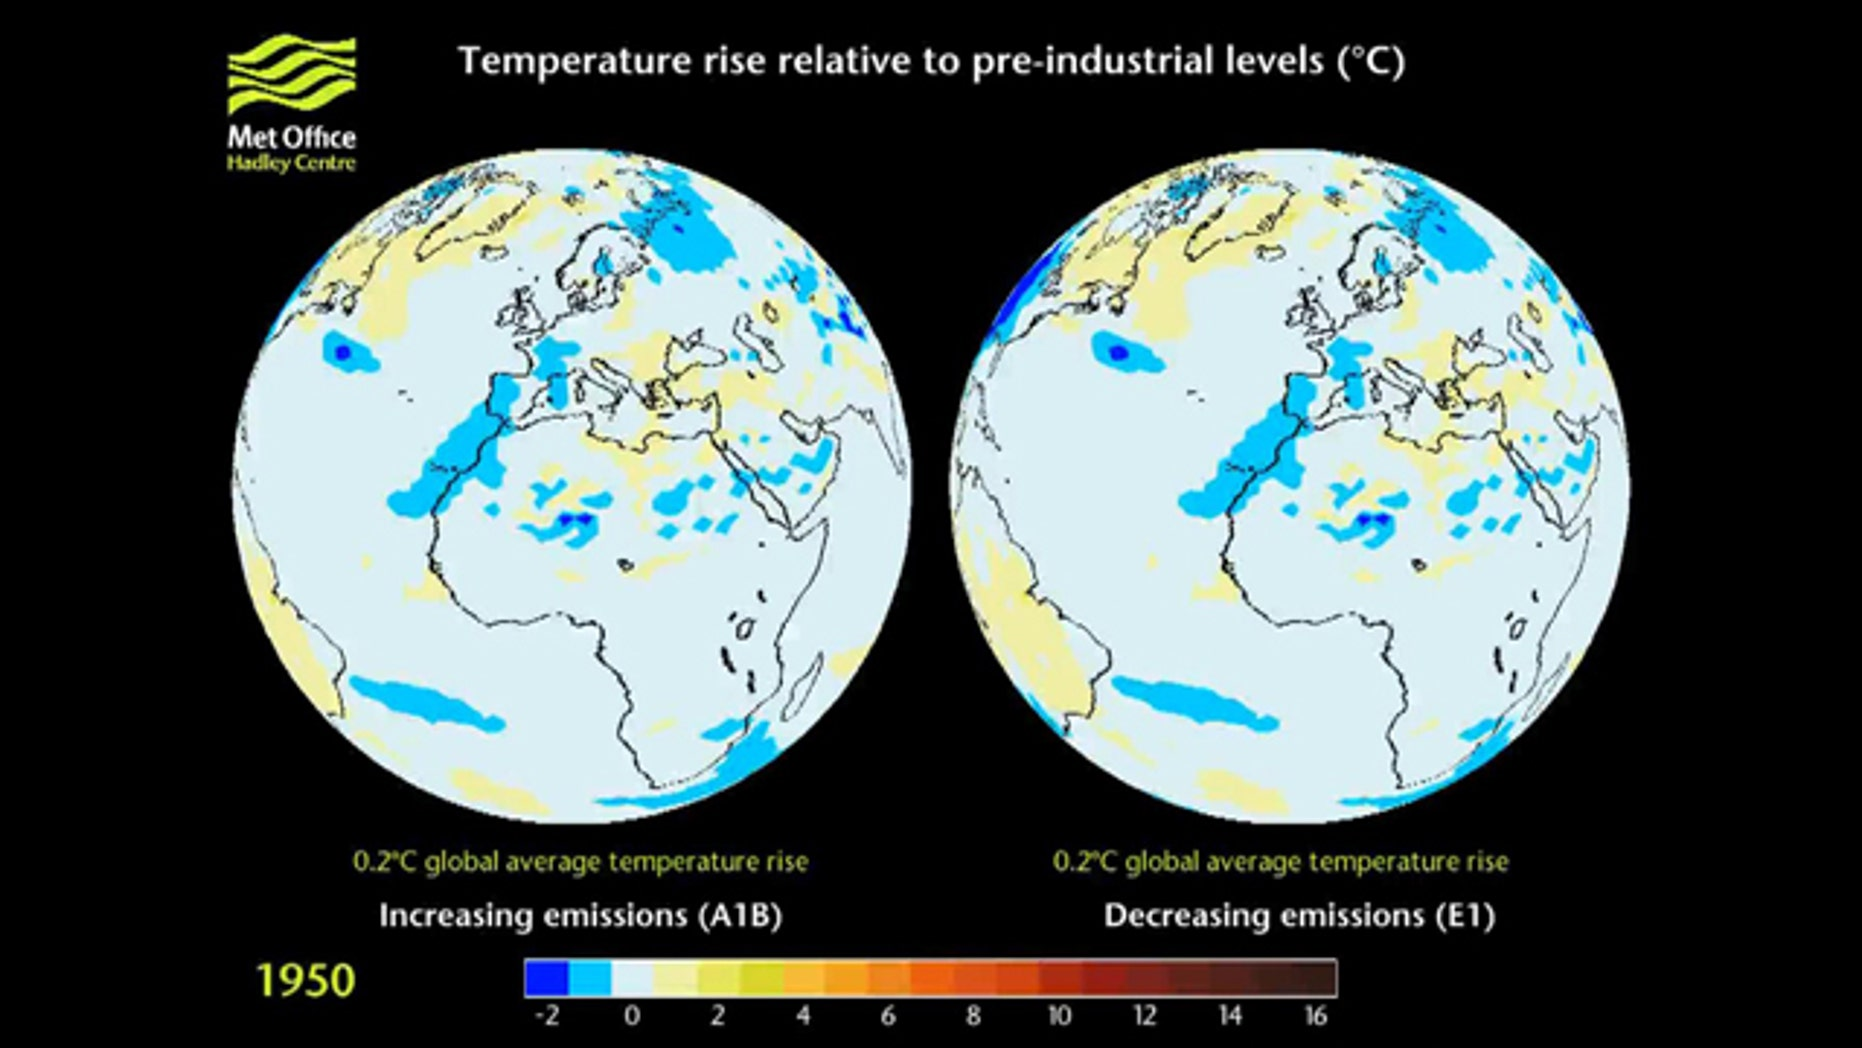 Met Office Hadley Centre projections of temperature change relative to pre-industrial levels, under two different emissions scenarios. Now the agency is proposing starting its climate models scratch.